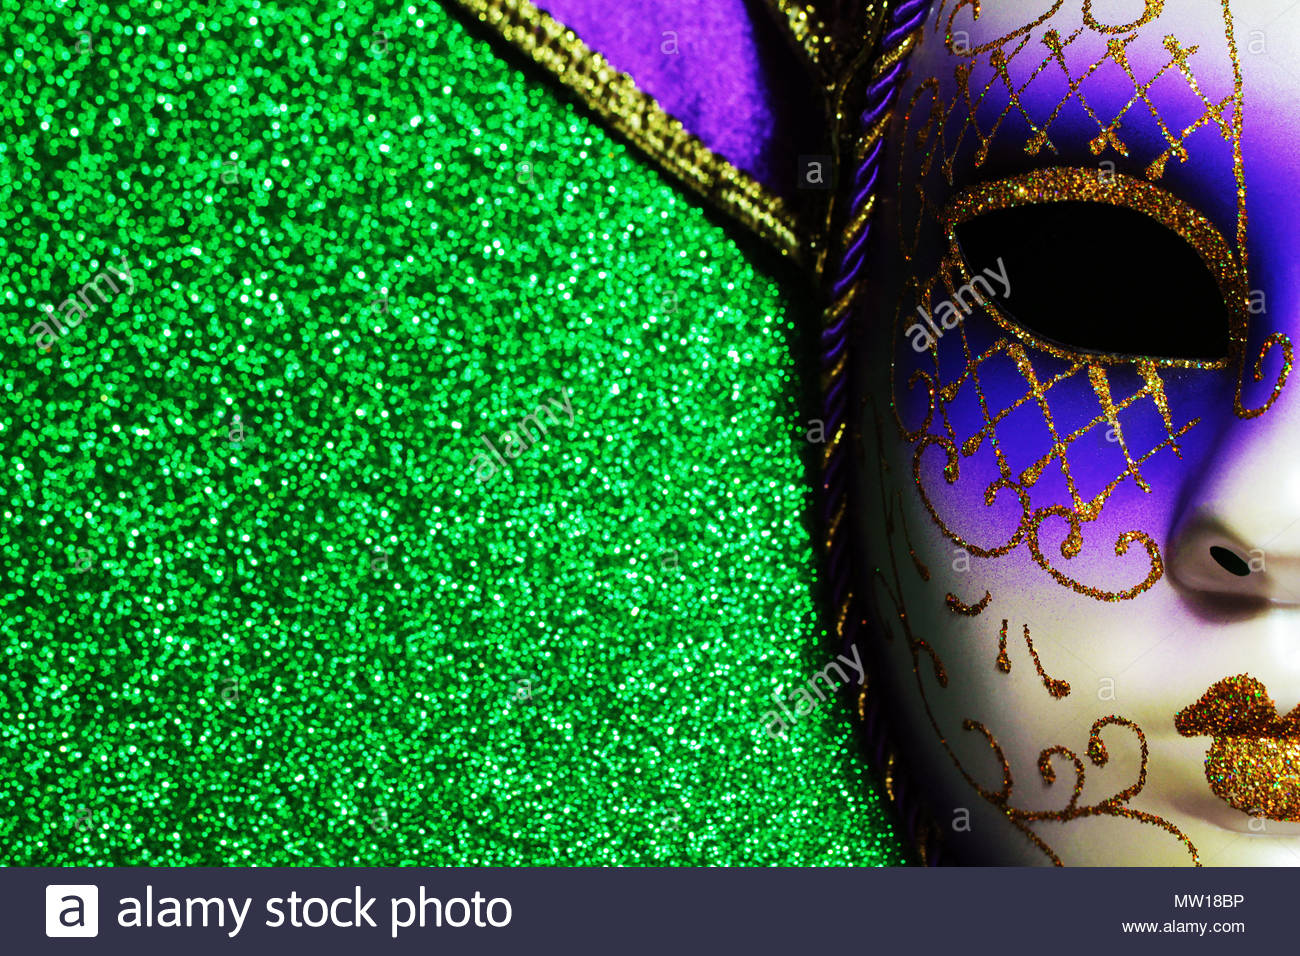 Background for Mardi gras or Fat tuesday with masquerade mask 1300x956